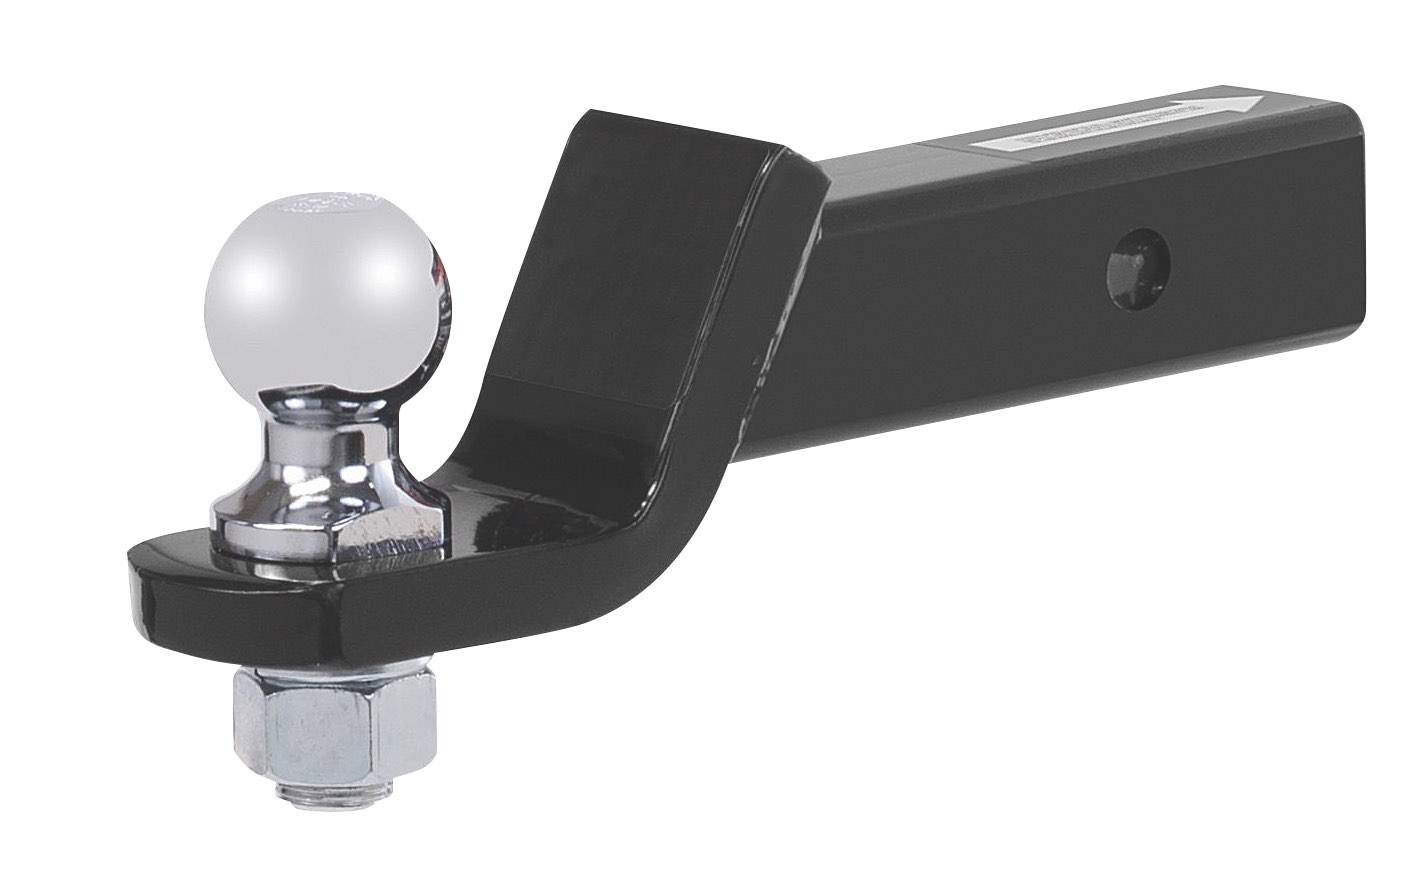 A typical ball hitch for a trailer